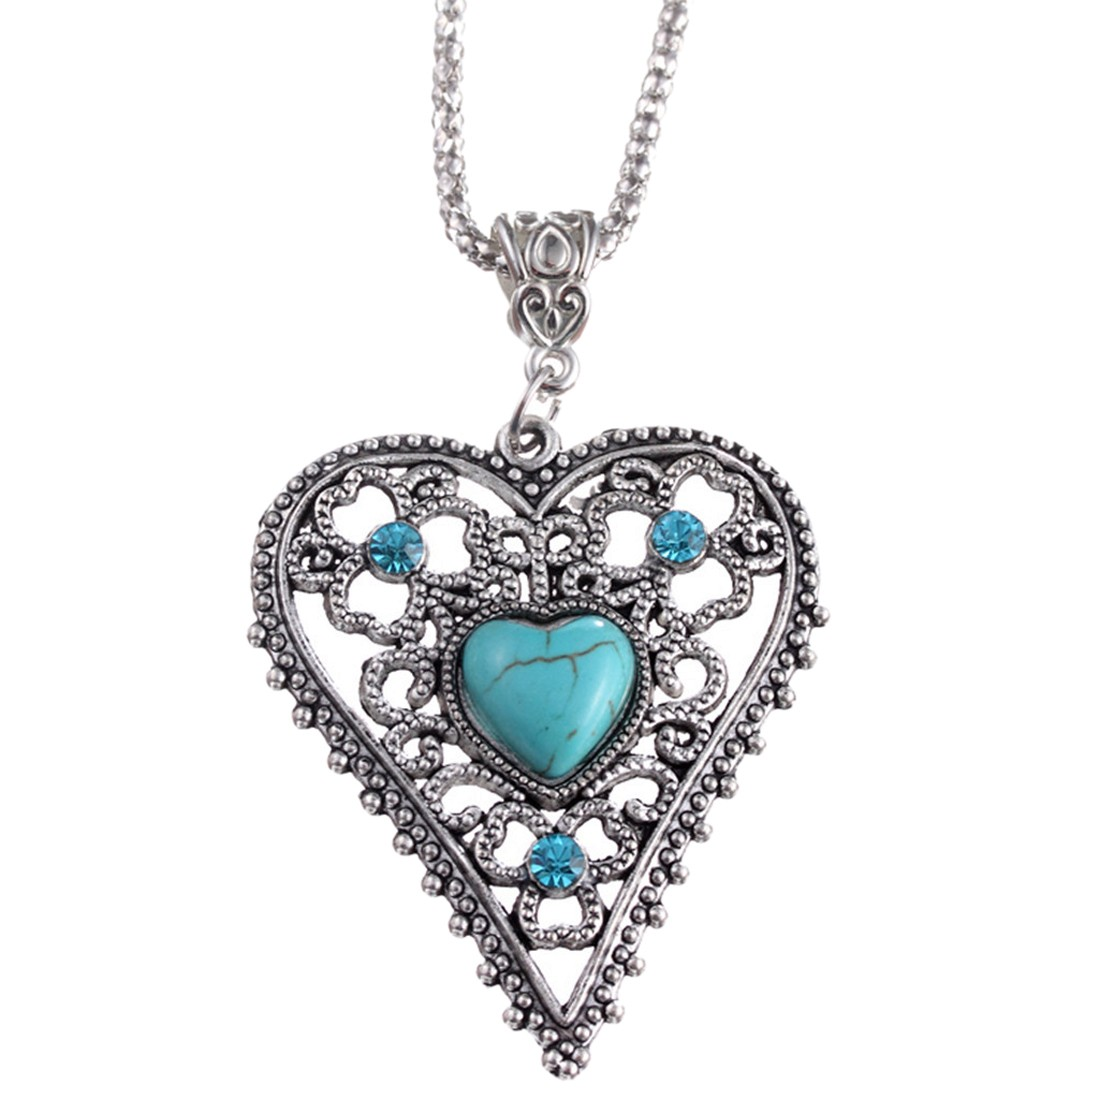 Tibet Silver Hollow Out Turquoise Blue Bead Heart Love Pendant Necklace